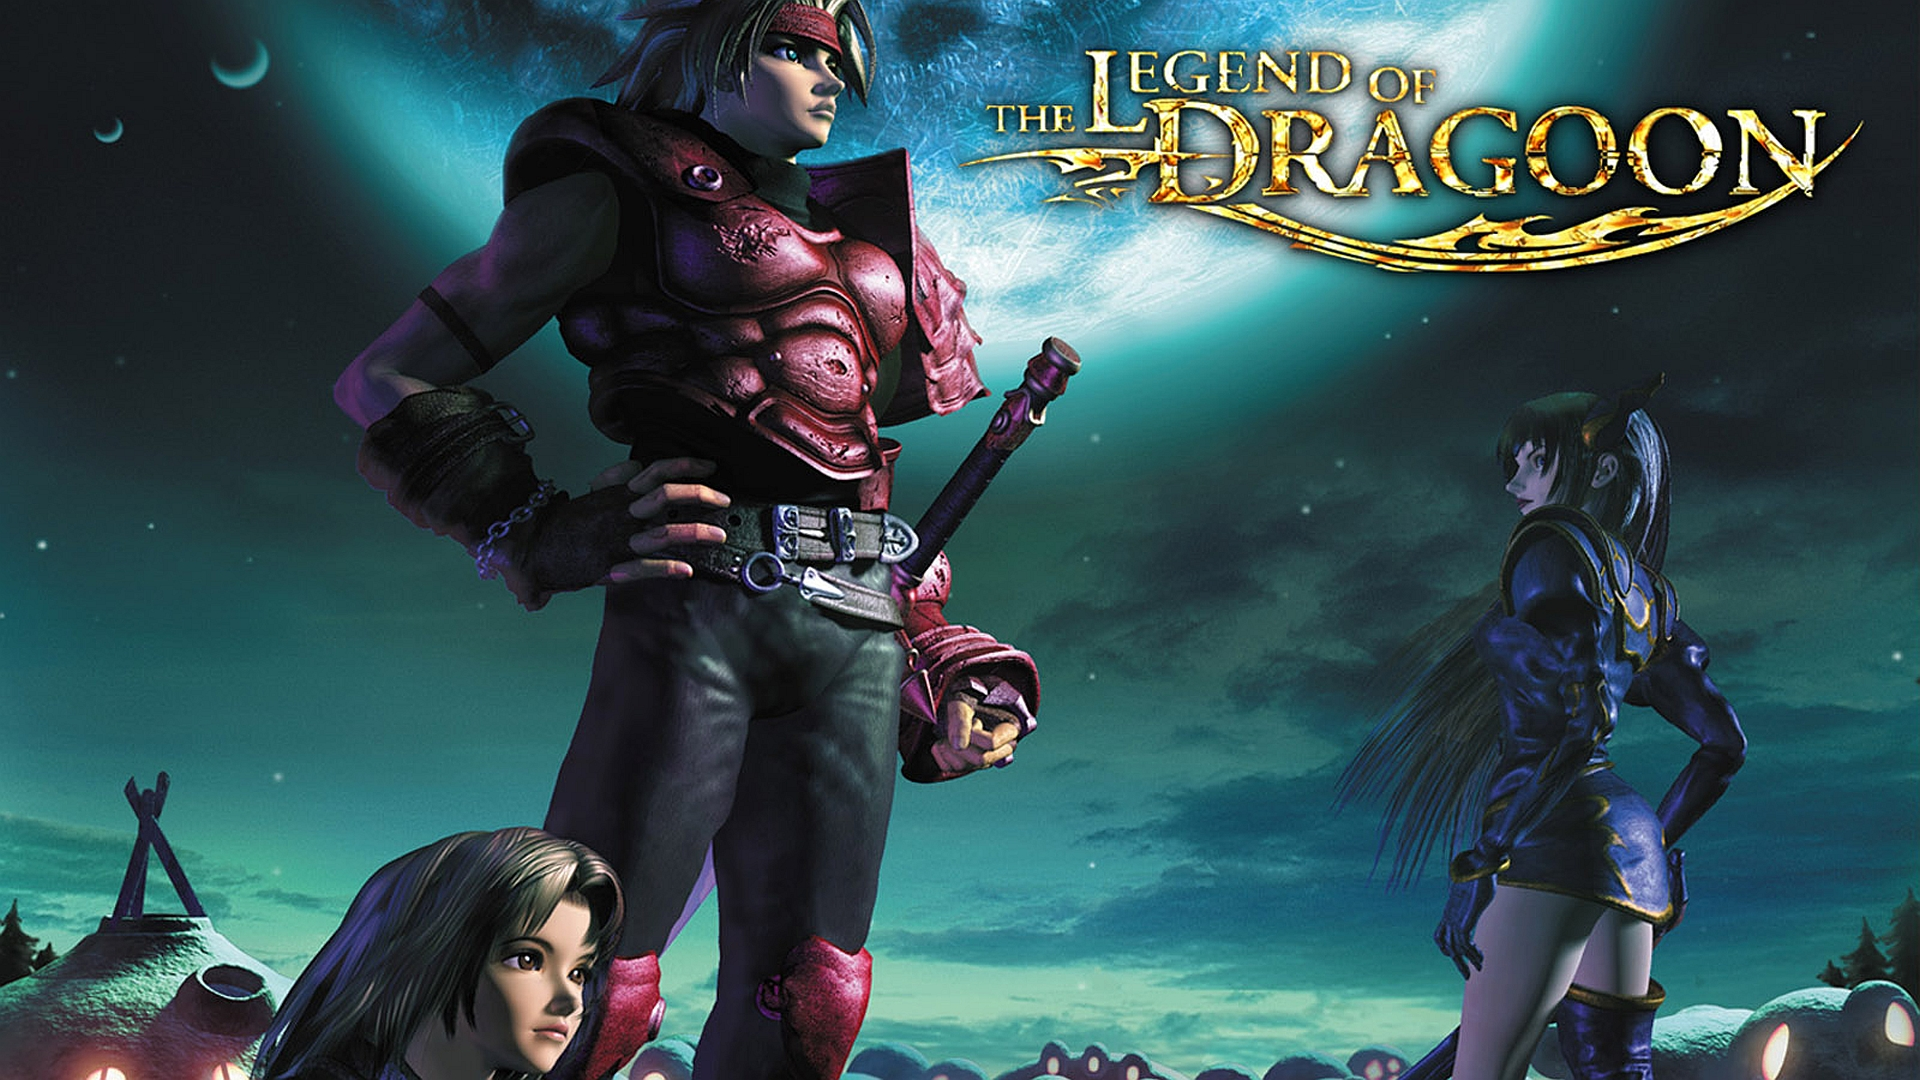 The Legend Of Dragoon Hd Wallpaper Background Image 1920x1080